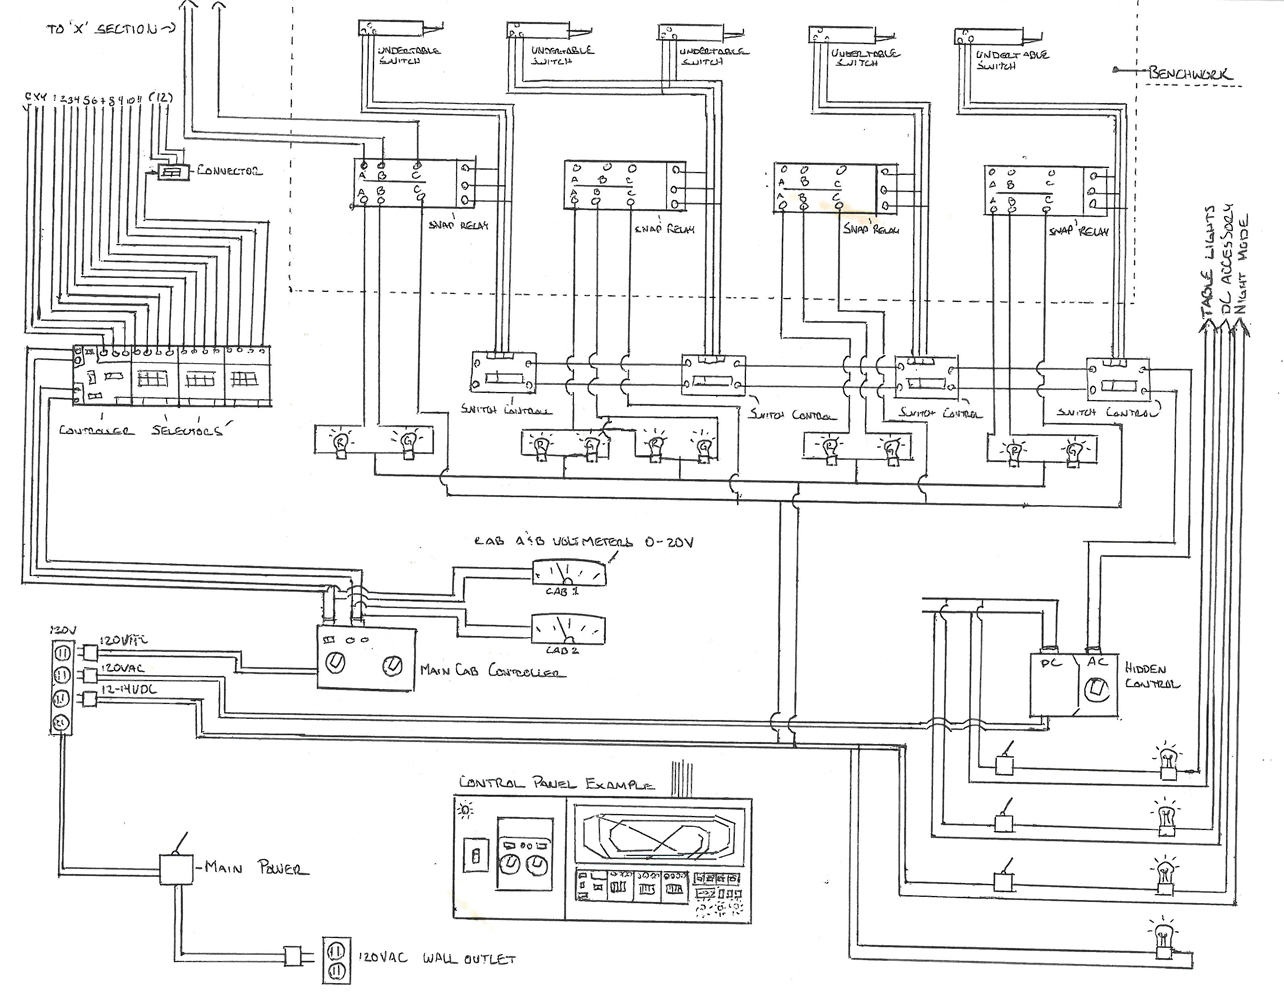 Wiring Diagram For A E100 Emergency Ballast